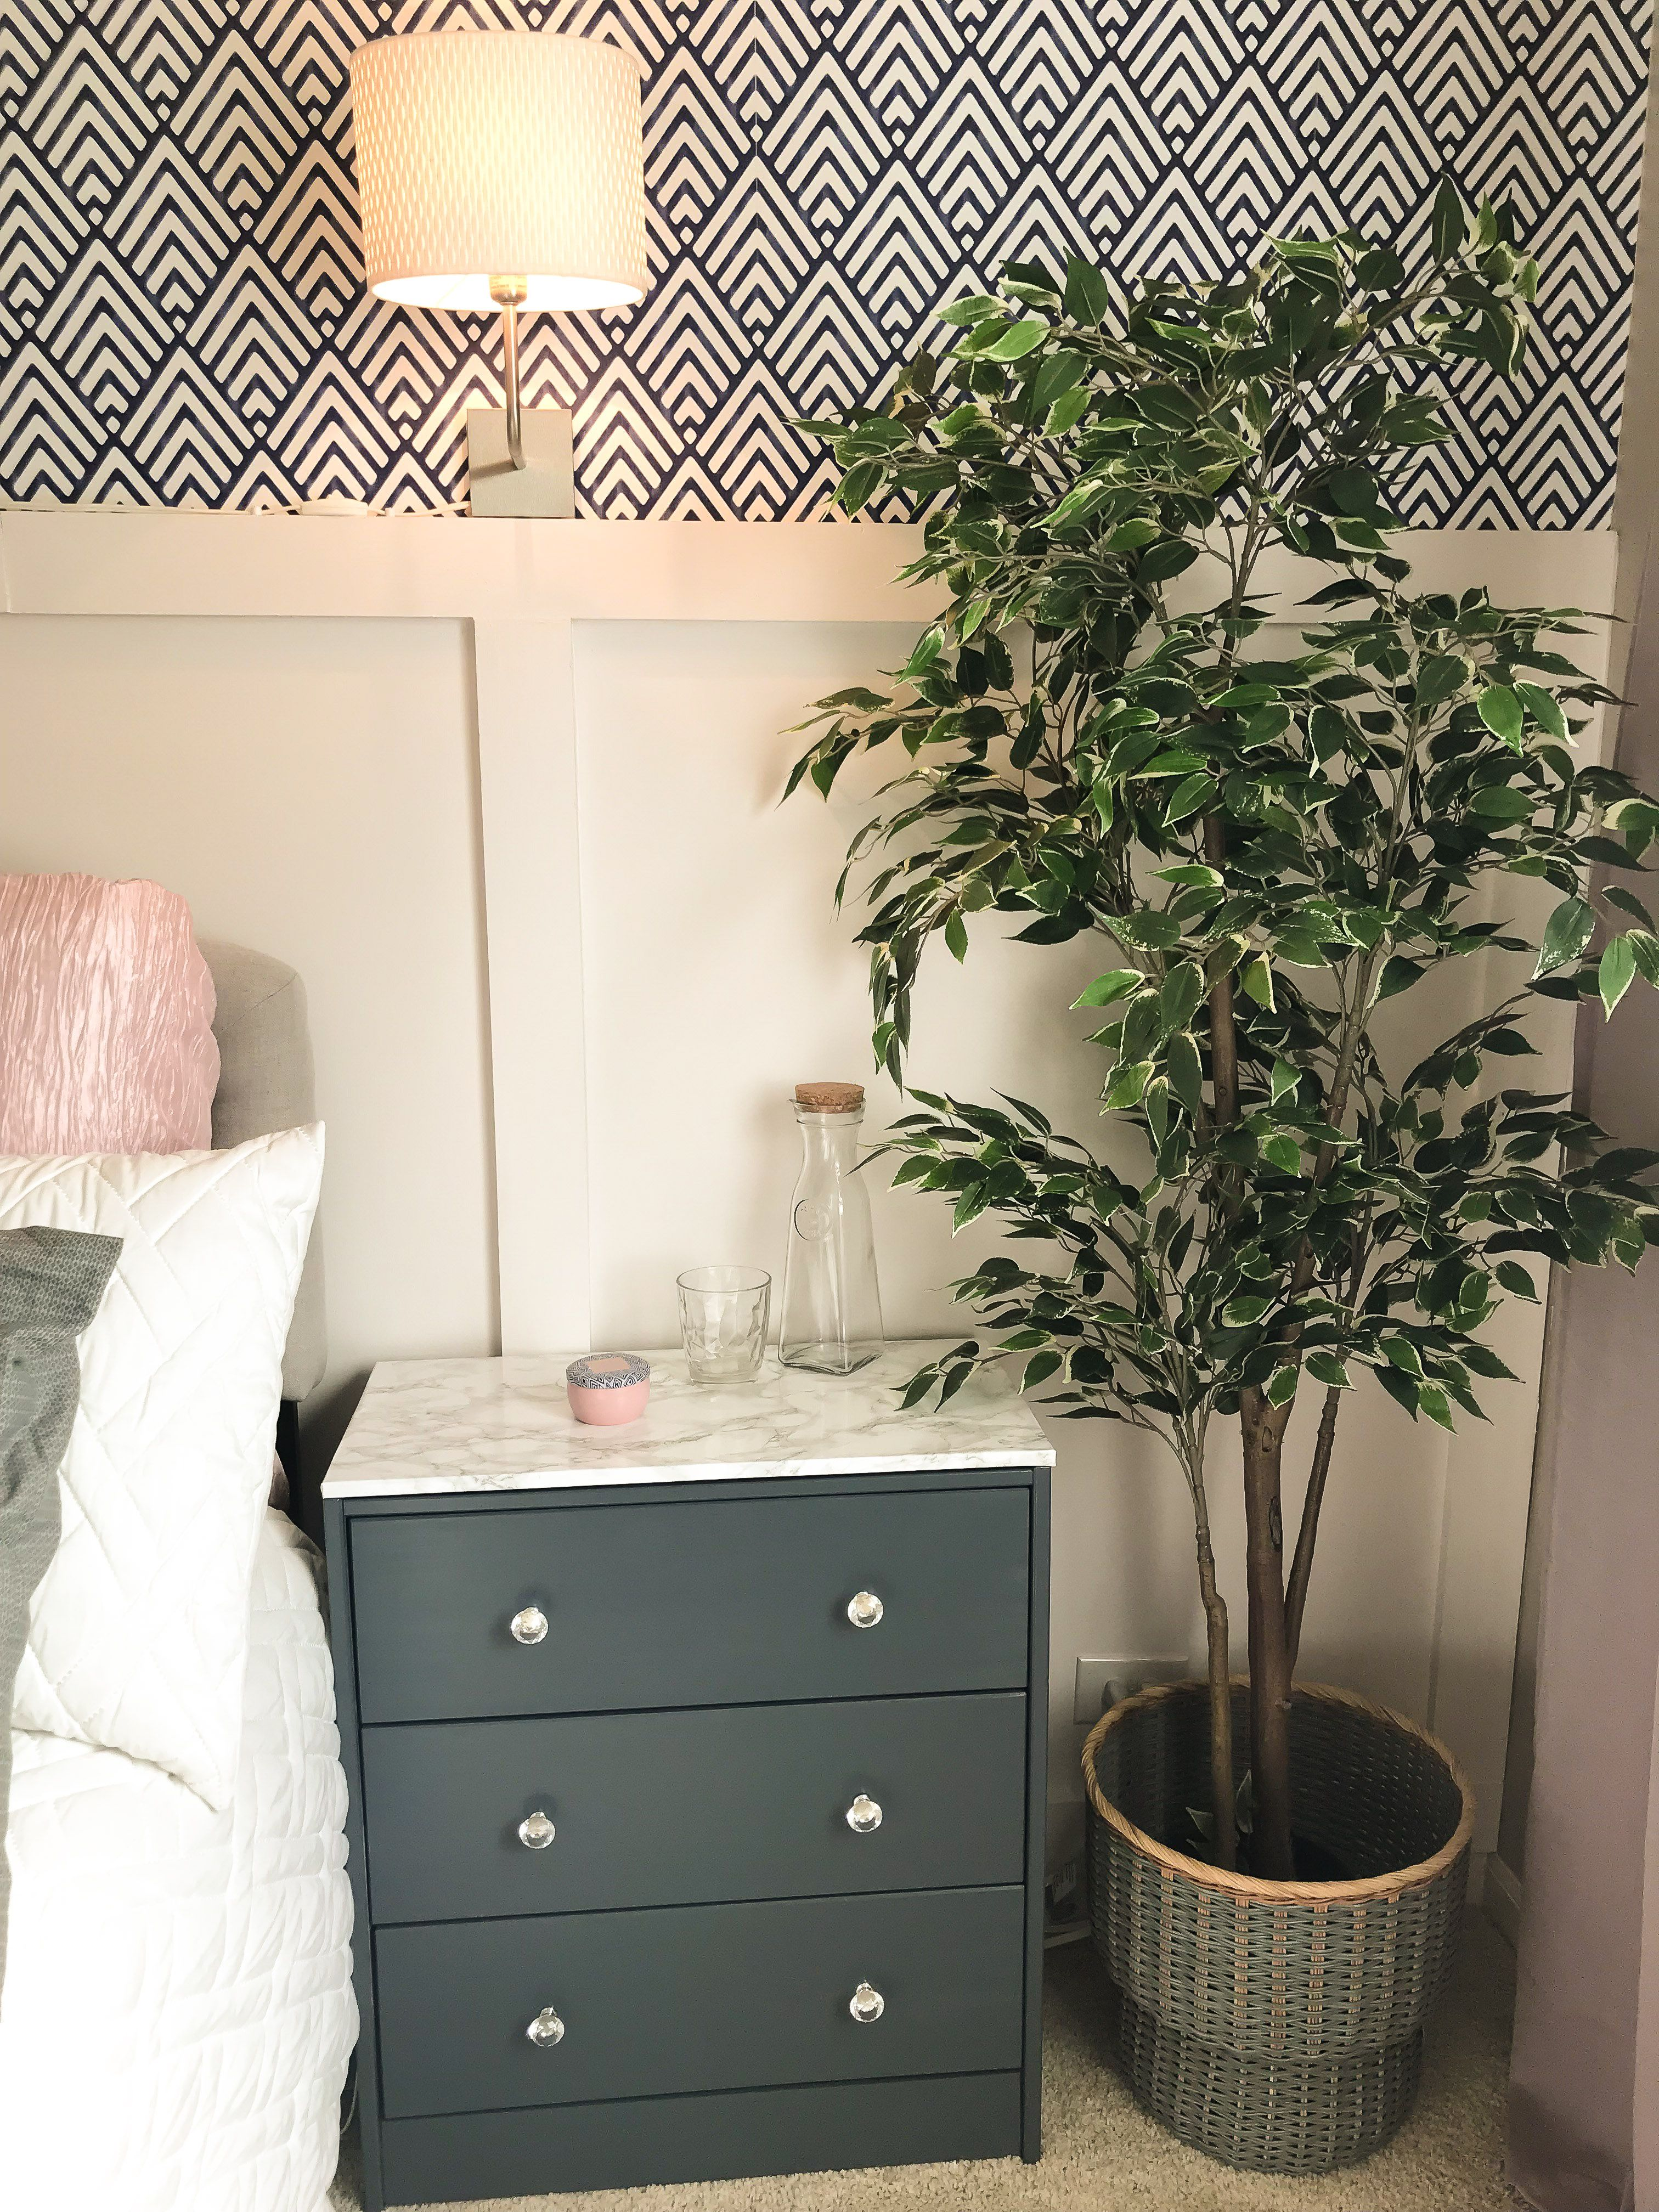 Img 3961 1 Rosewood And Grace Guest Room Office Dresser As Nightstand Interior Design Inspiration